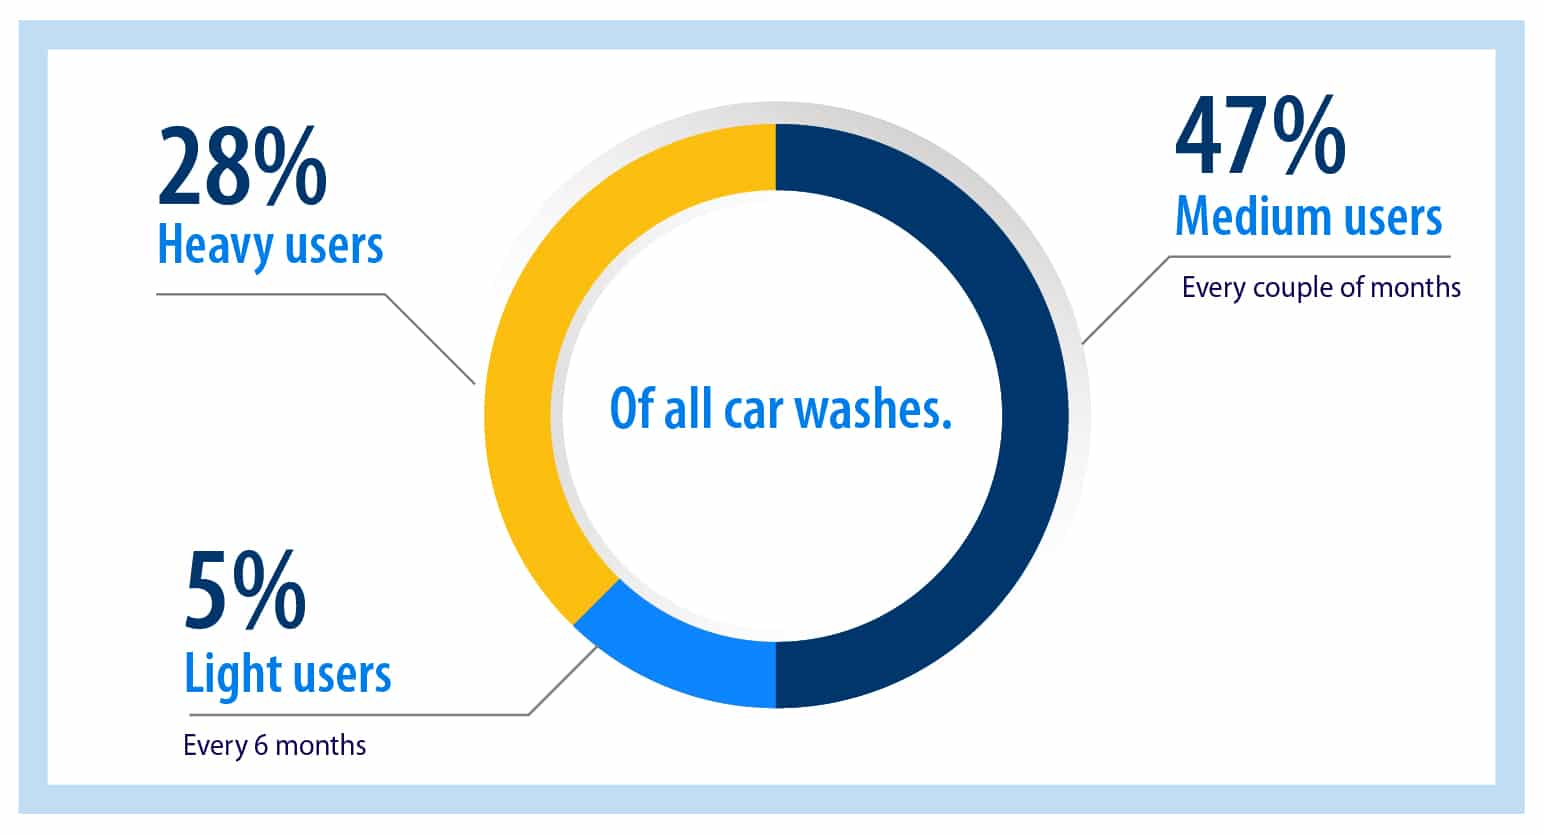 Car washes for heavy users make up 66% of total car washes.